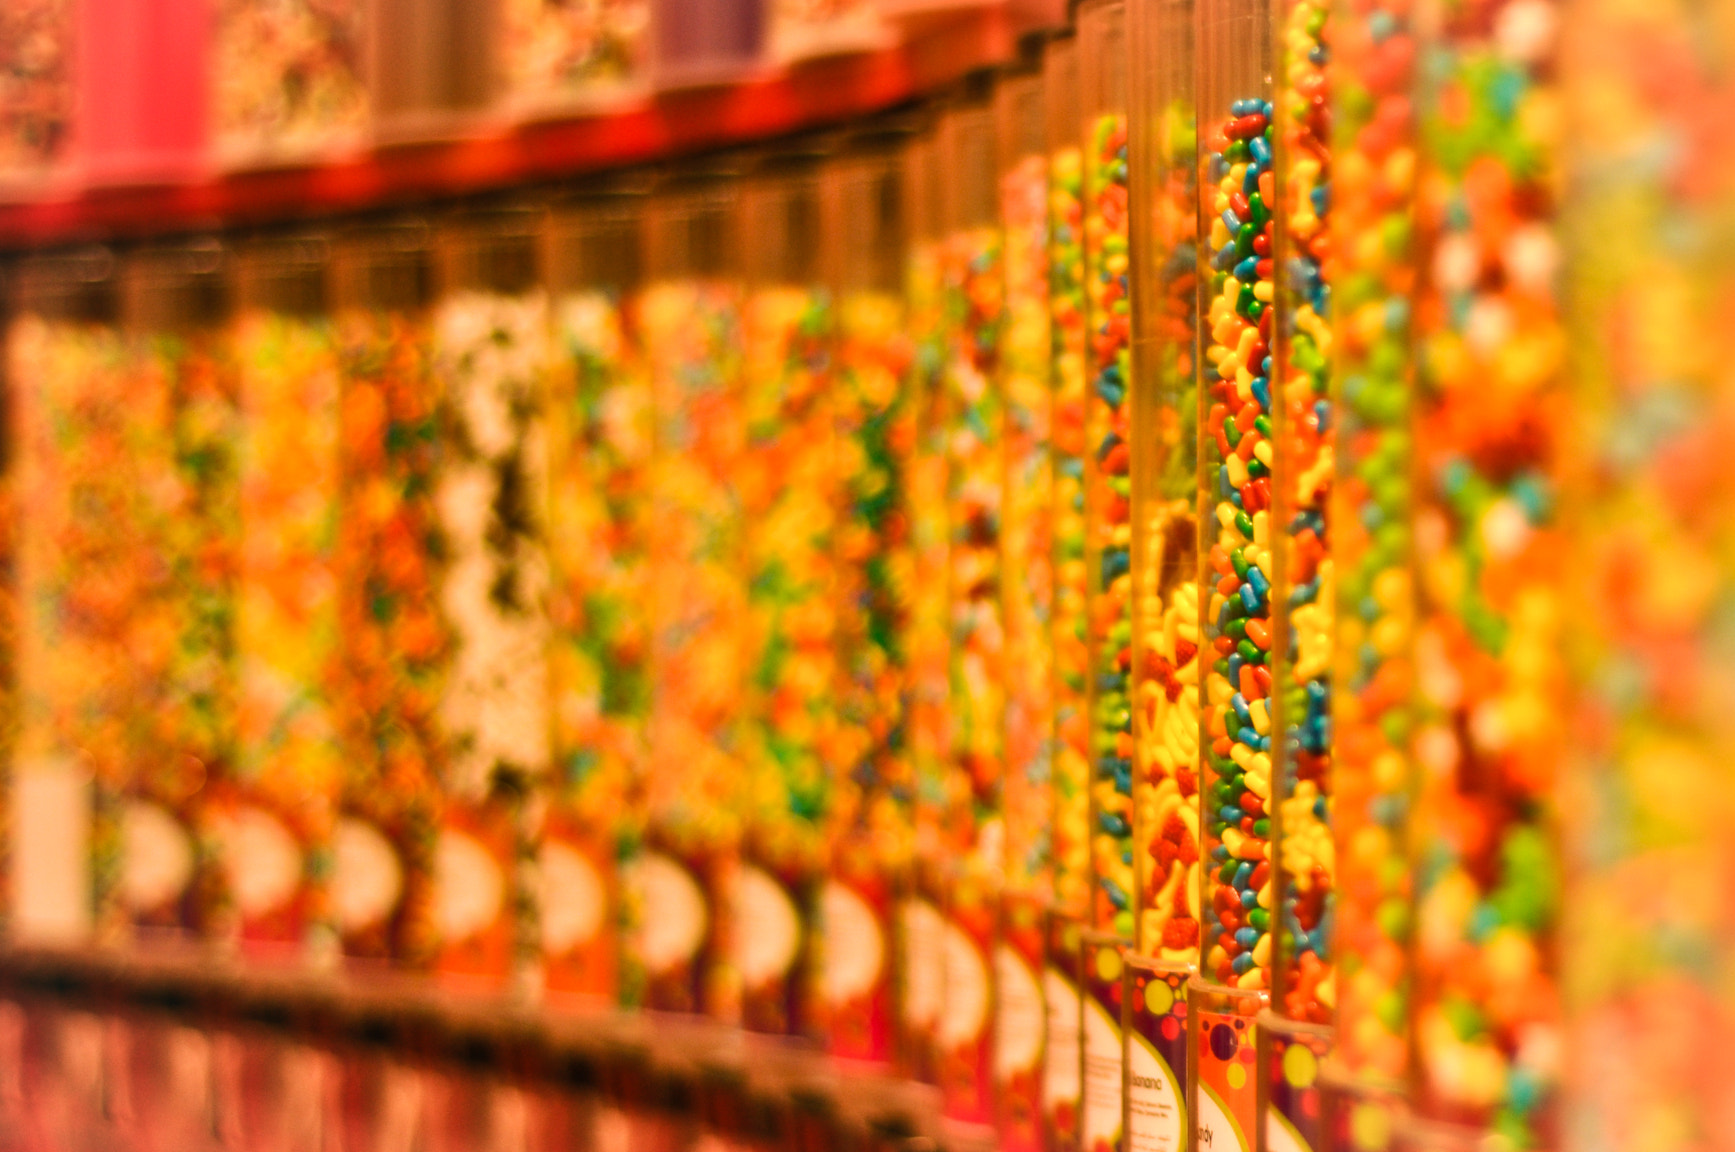 Photograph Candylicious by Gautam Jose on 500px